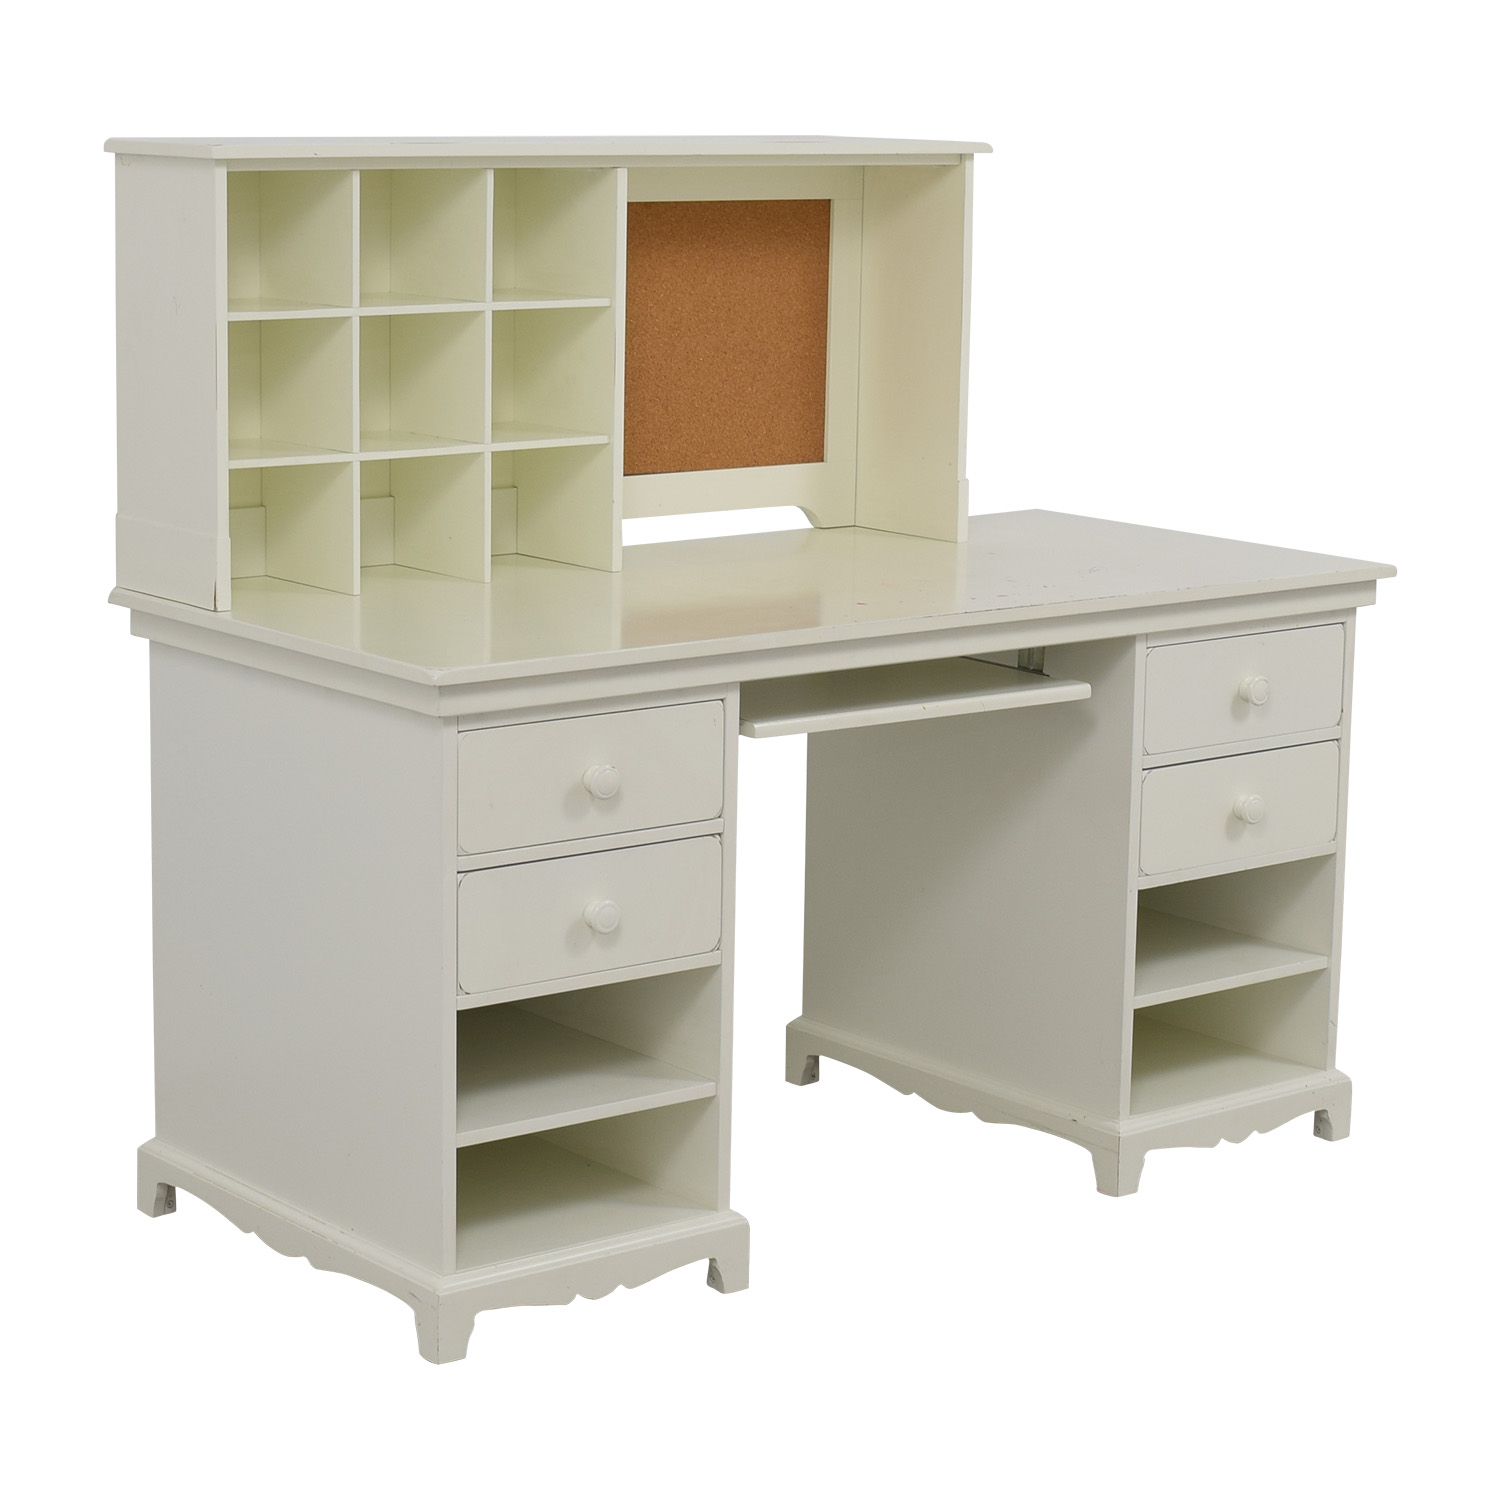 desk walmart ladder ip and tabletop mendocino with urbane white com cubby filbert